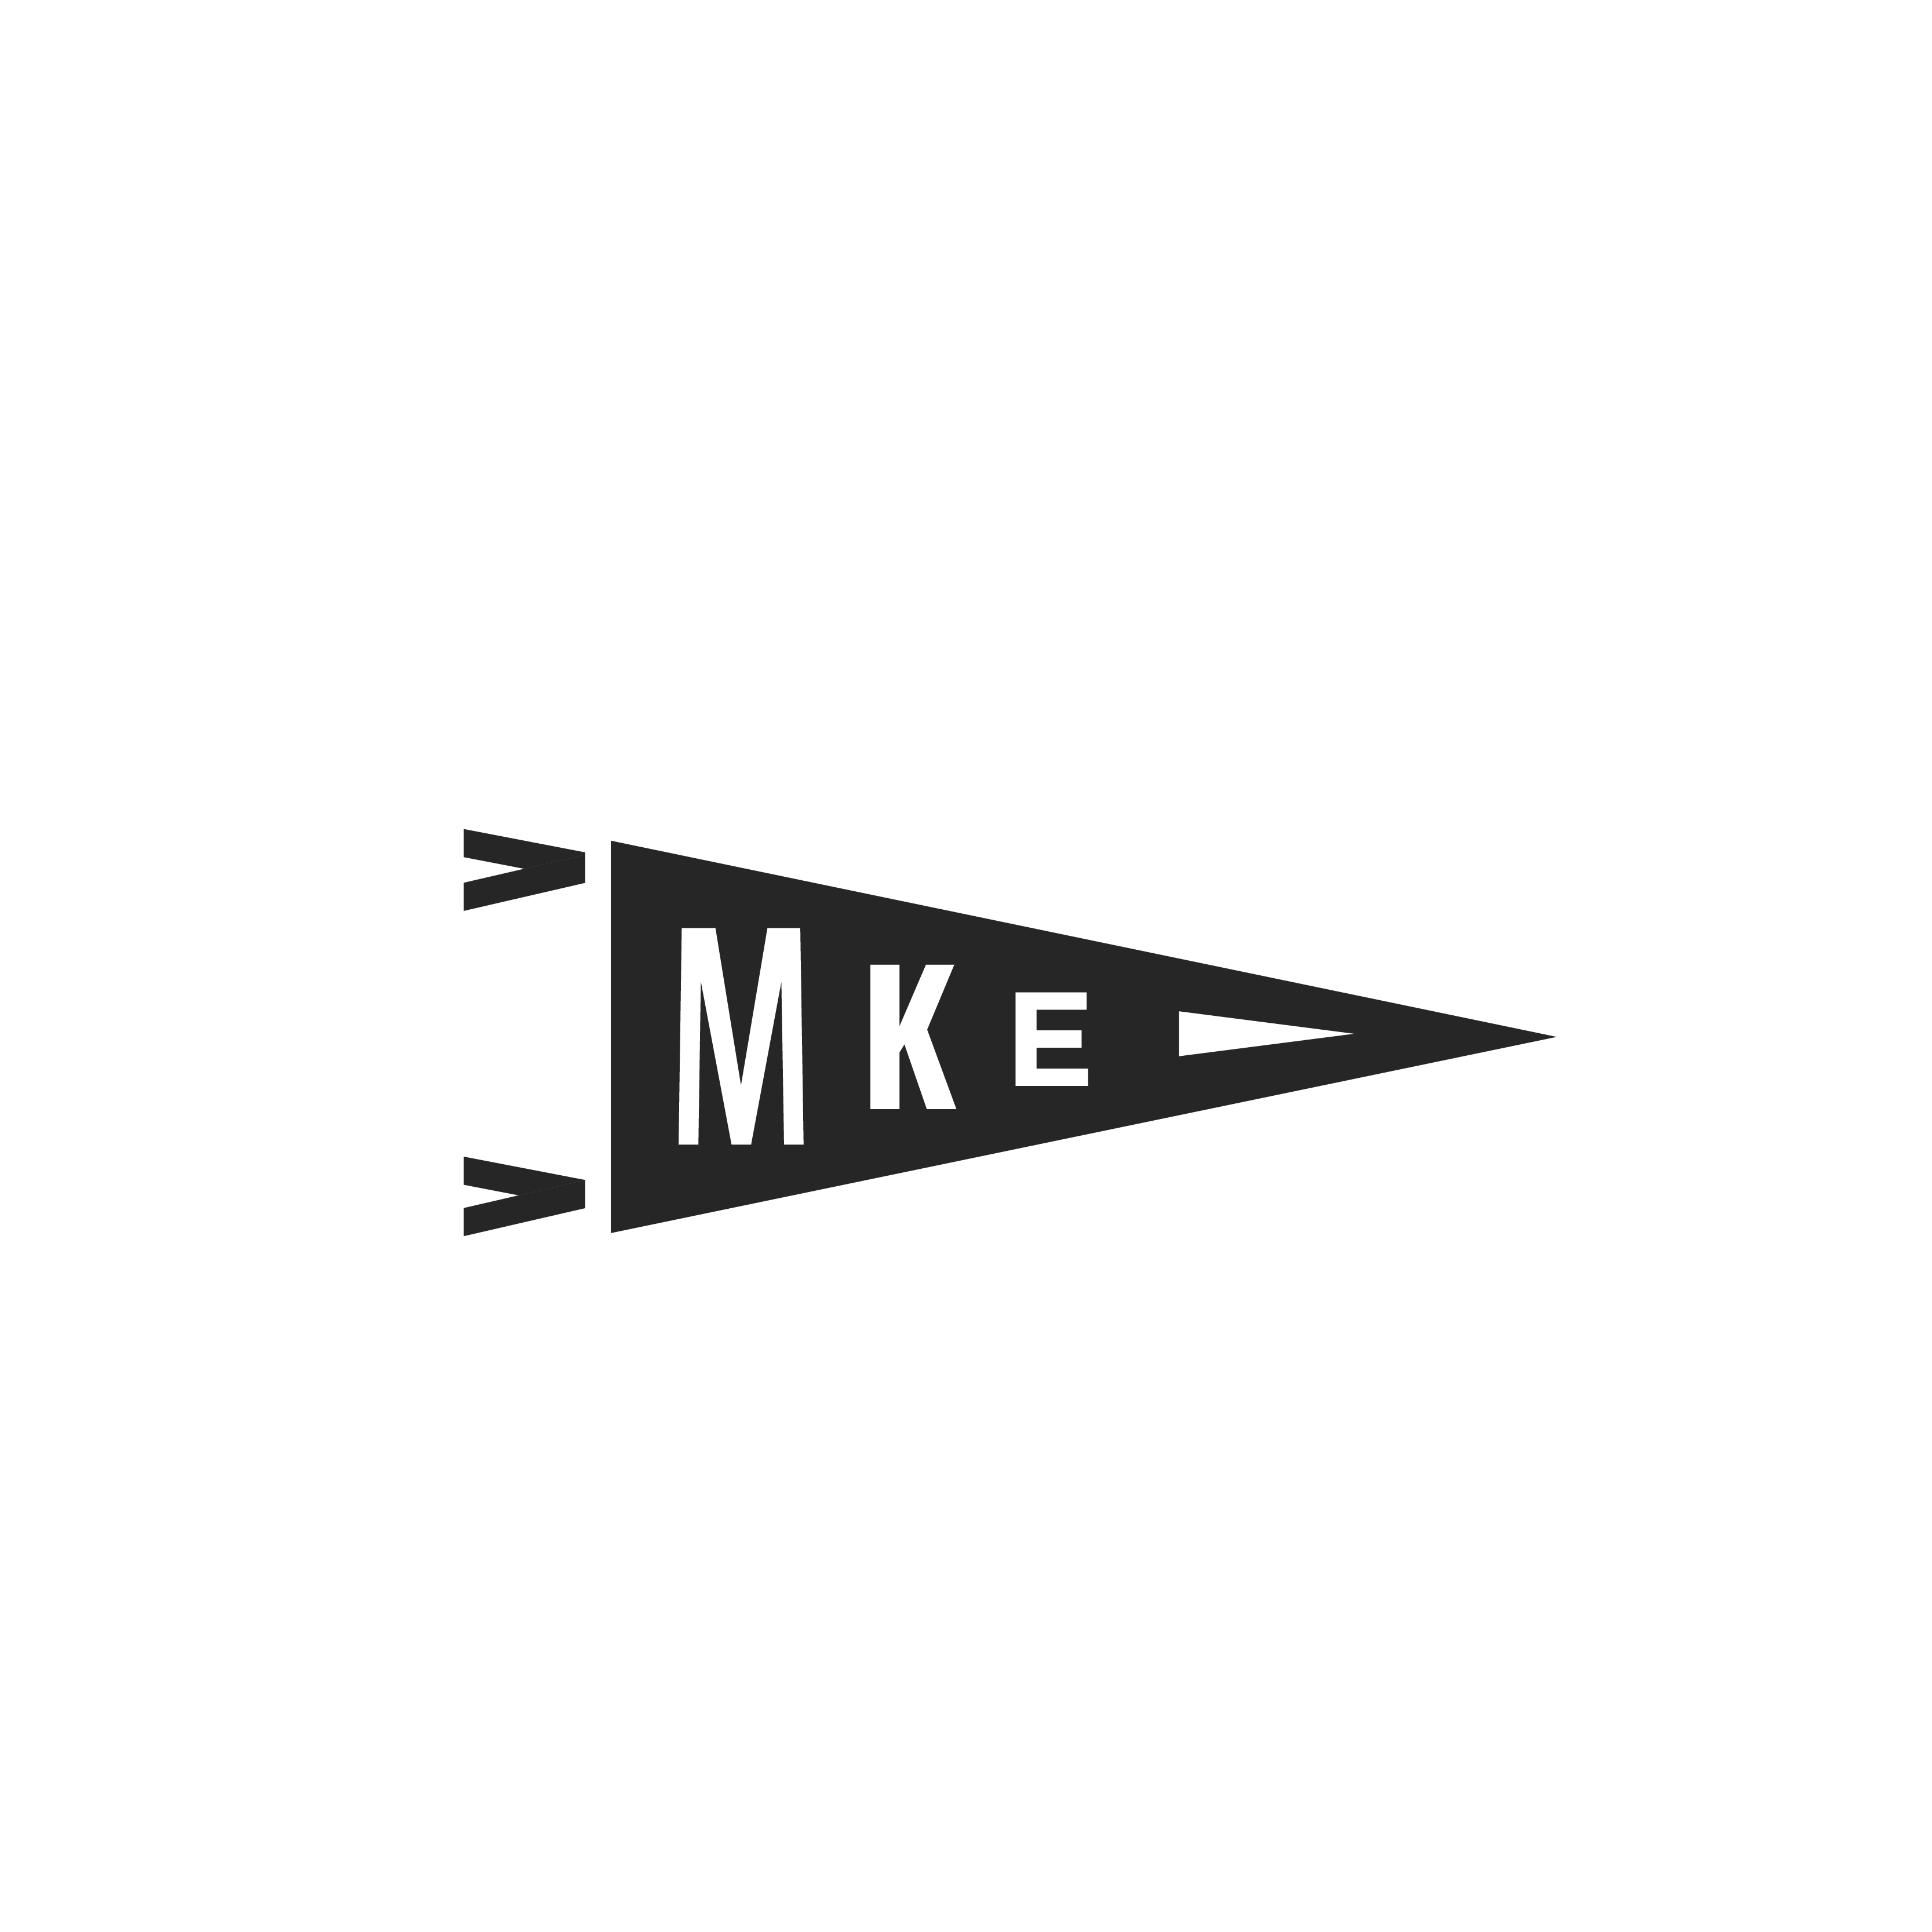 MKE Pennant (NO TEXT)